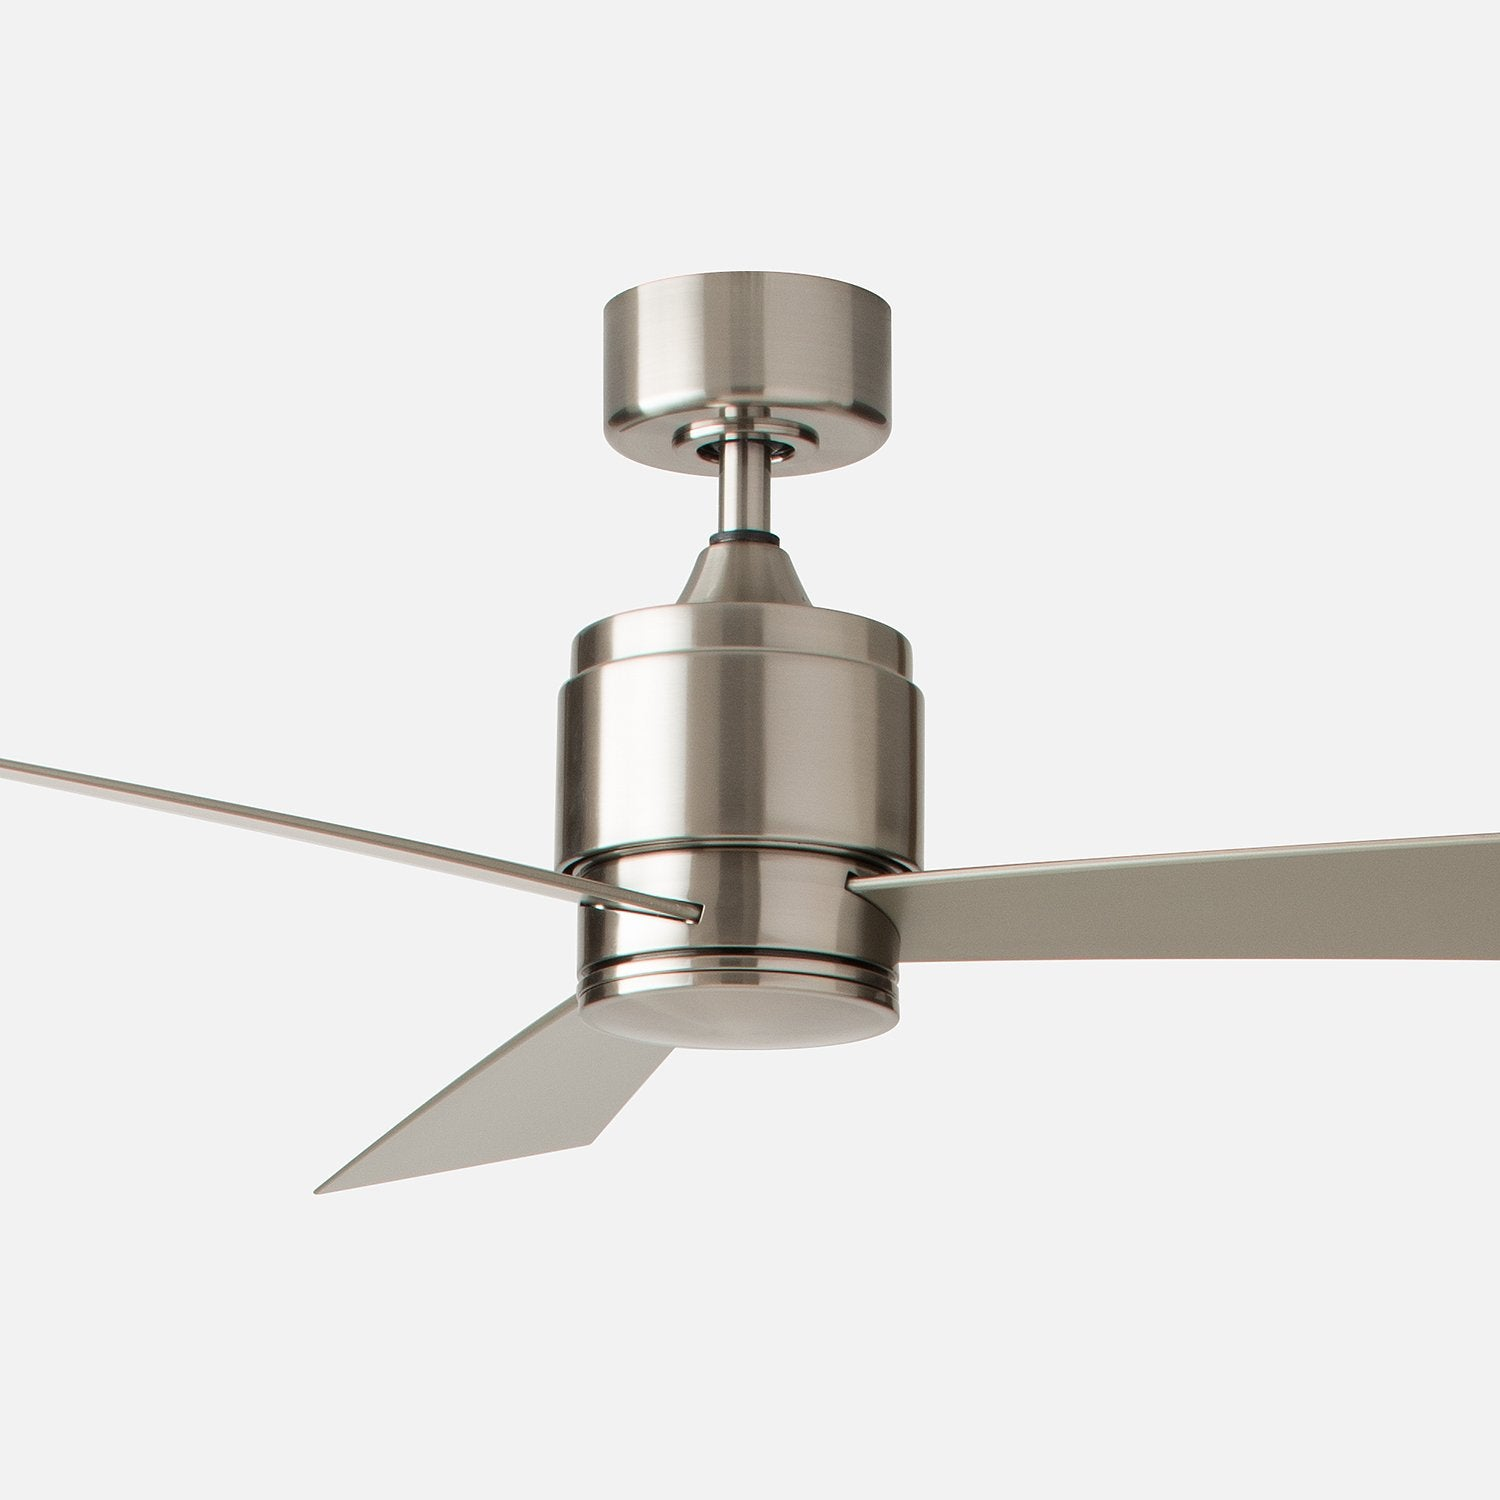 Zonix 52 led ceiling fan brushed nickel schoolhouse zonix 52 aloadofball Image collections